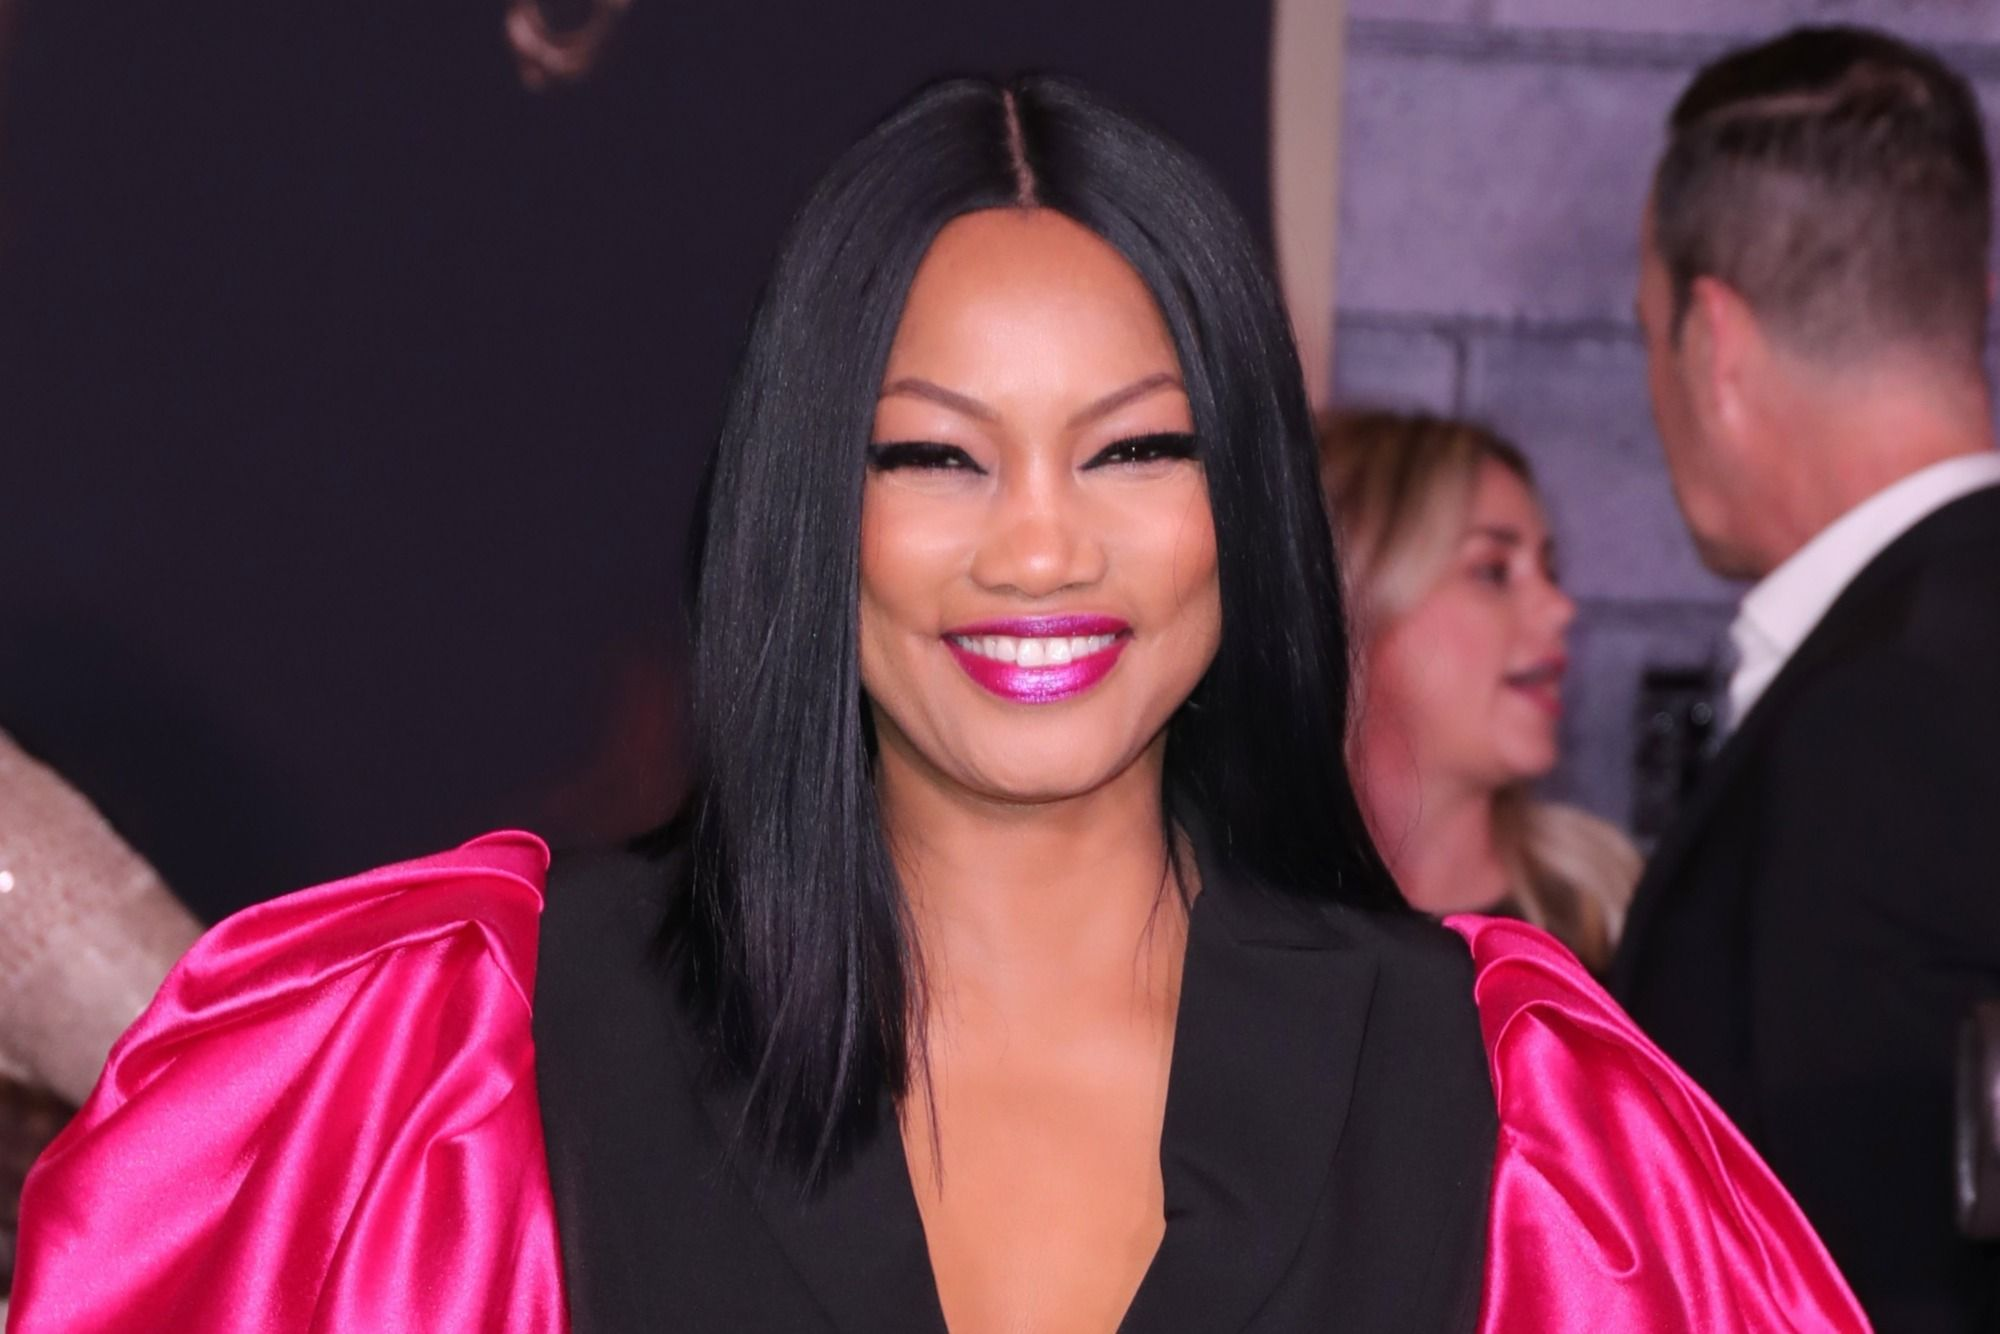 """garcelle-beauvais-reportedly-blew-away-everyone-during-her-chemistry-test-for-the-real-details"""